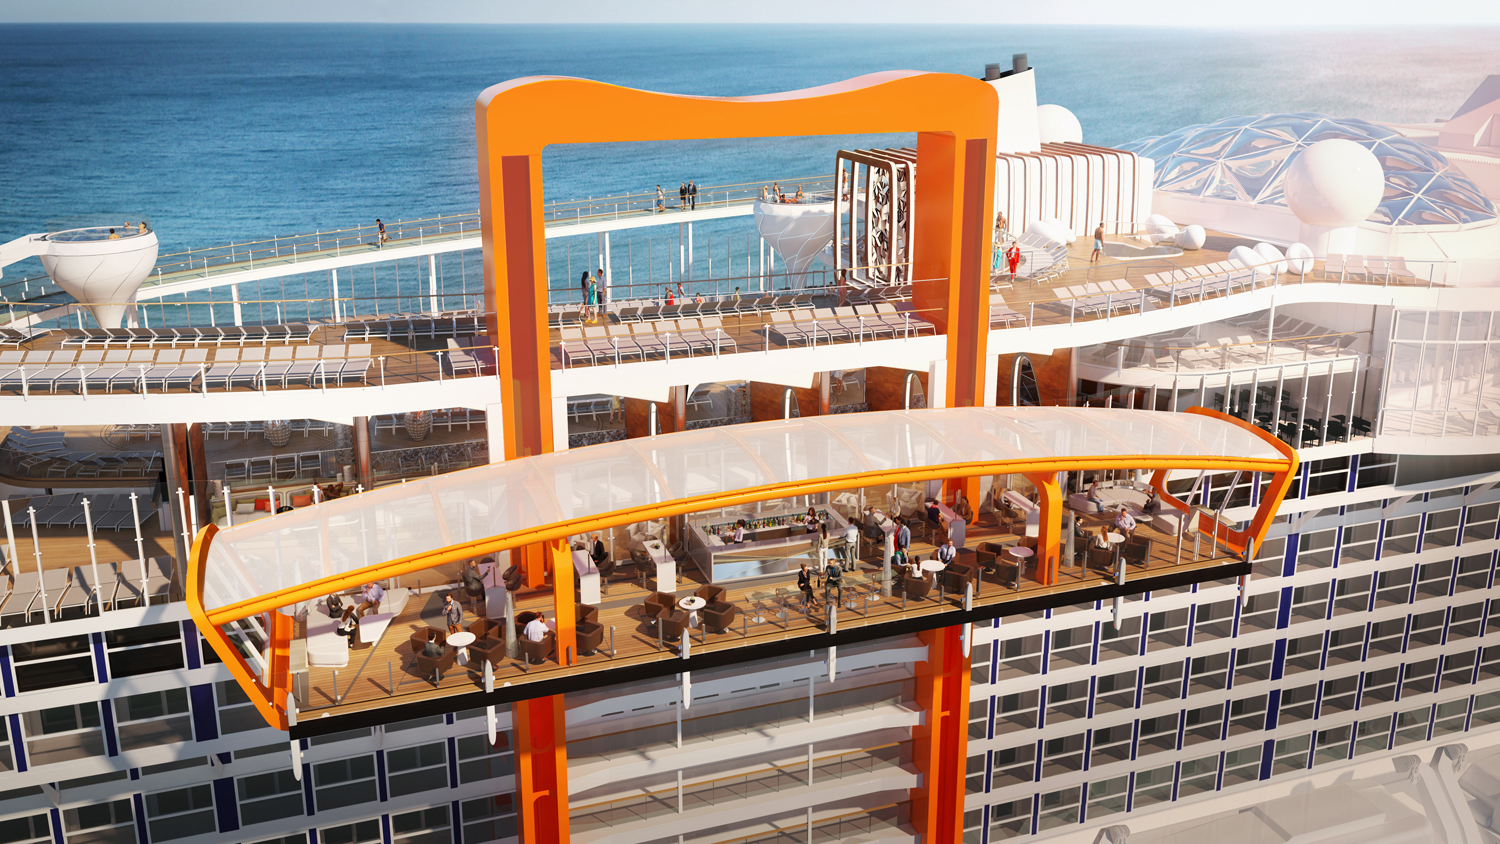 The Magic Carpet on the Celebrity Edge willmoves up and down the ship's 16 decks to deliverdifferent experiences at each one.